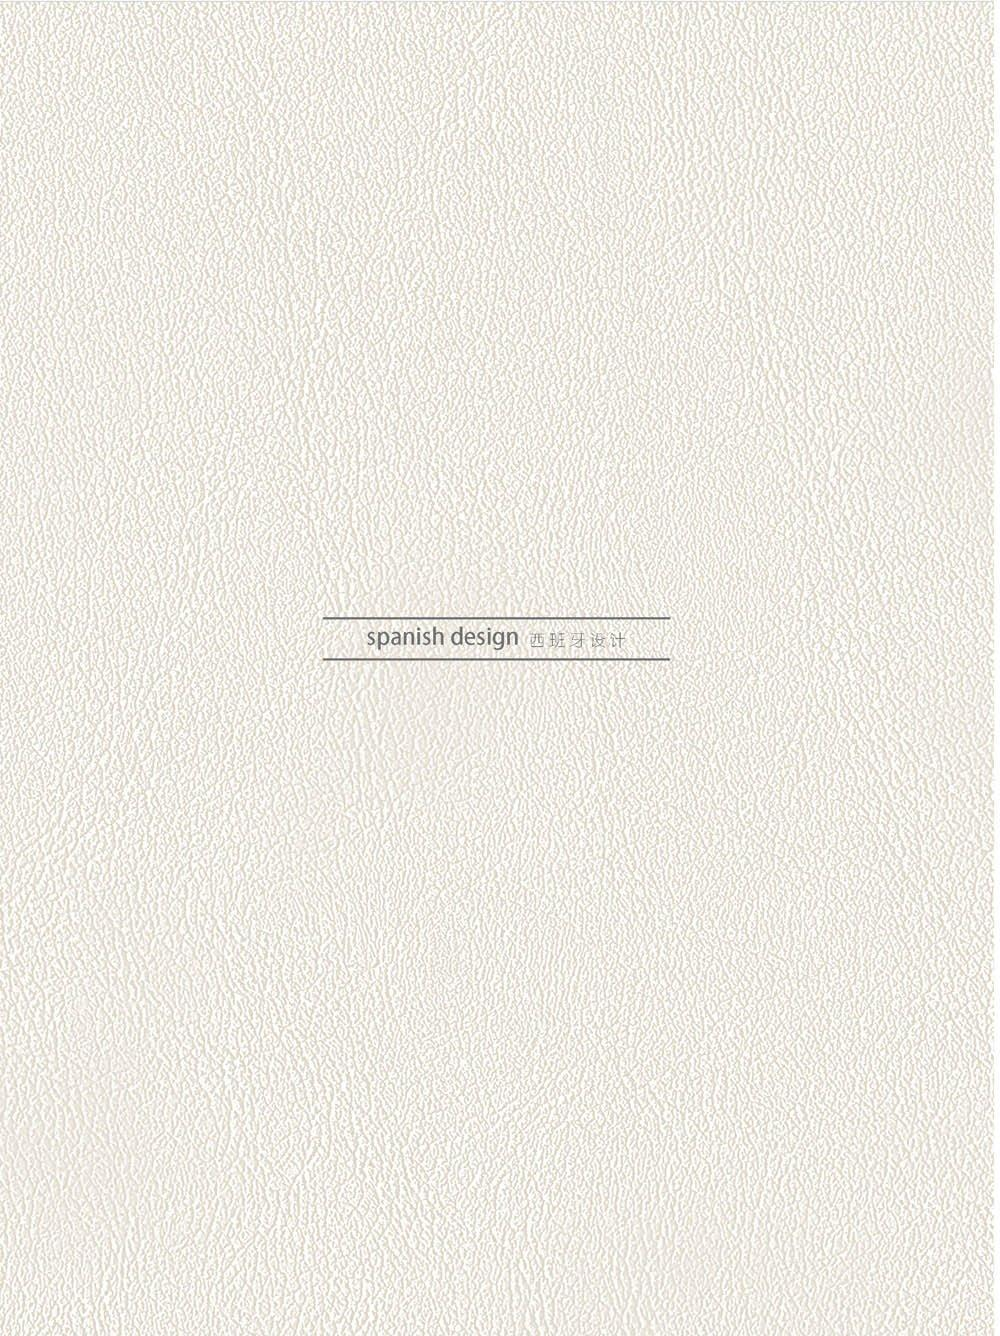 jaen melamine paper suppliers series for library-3